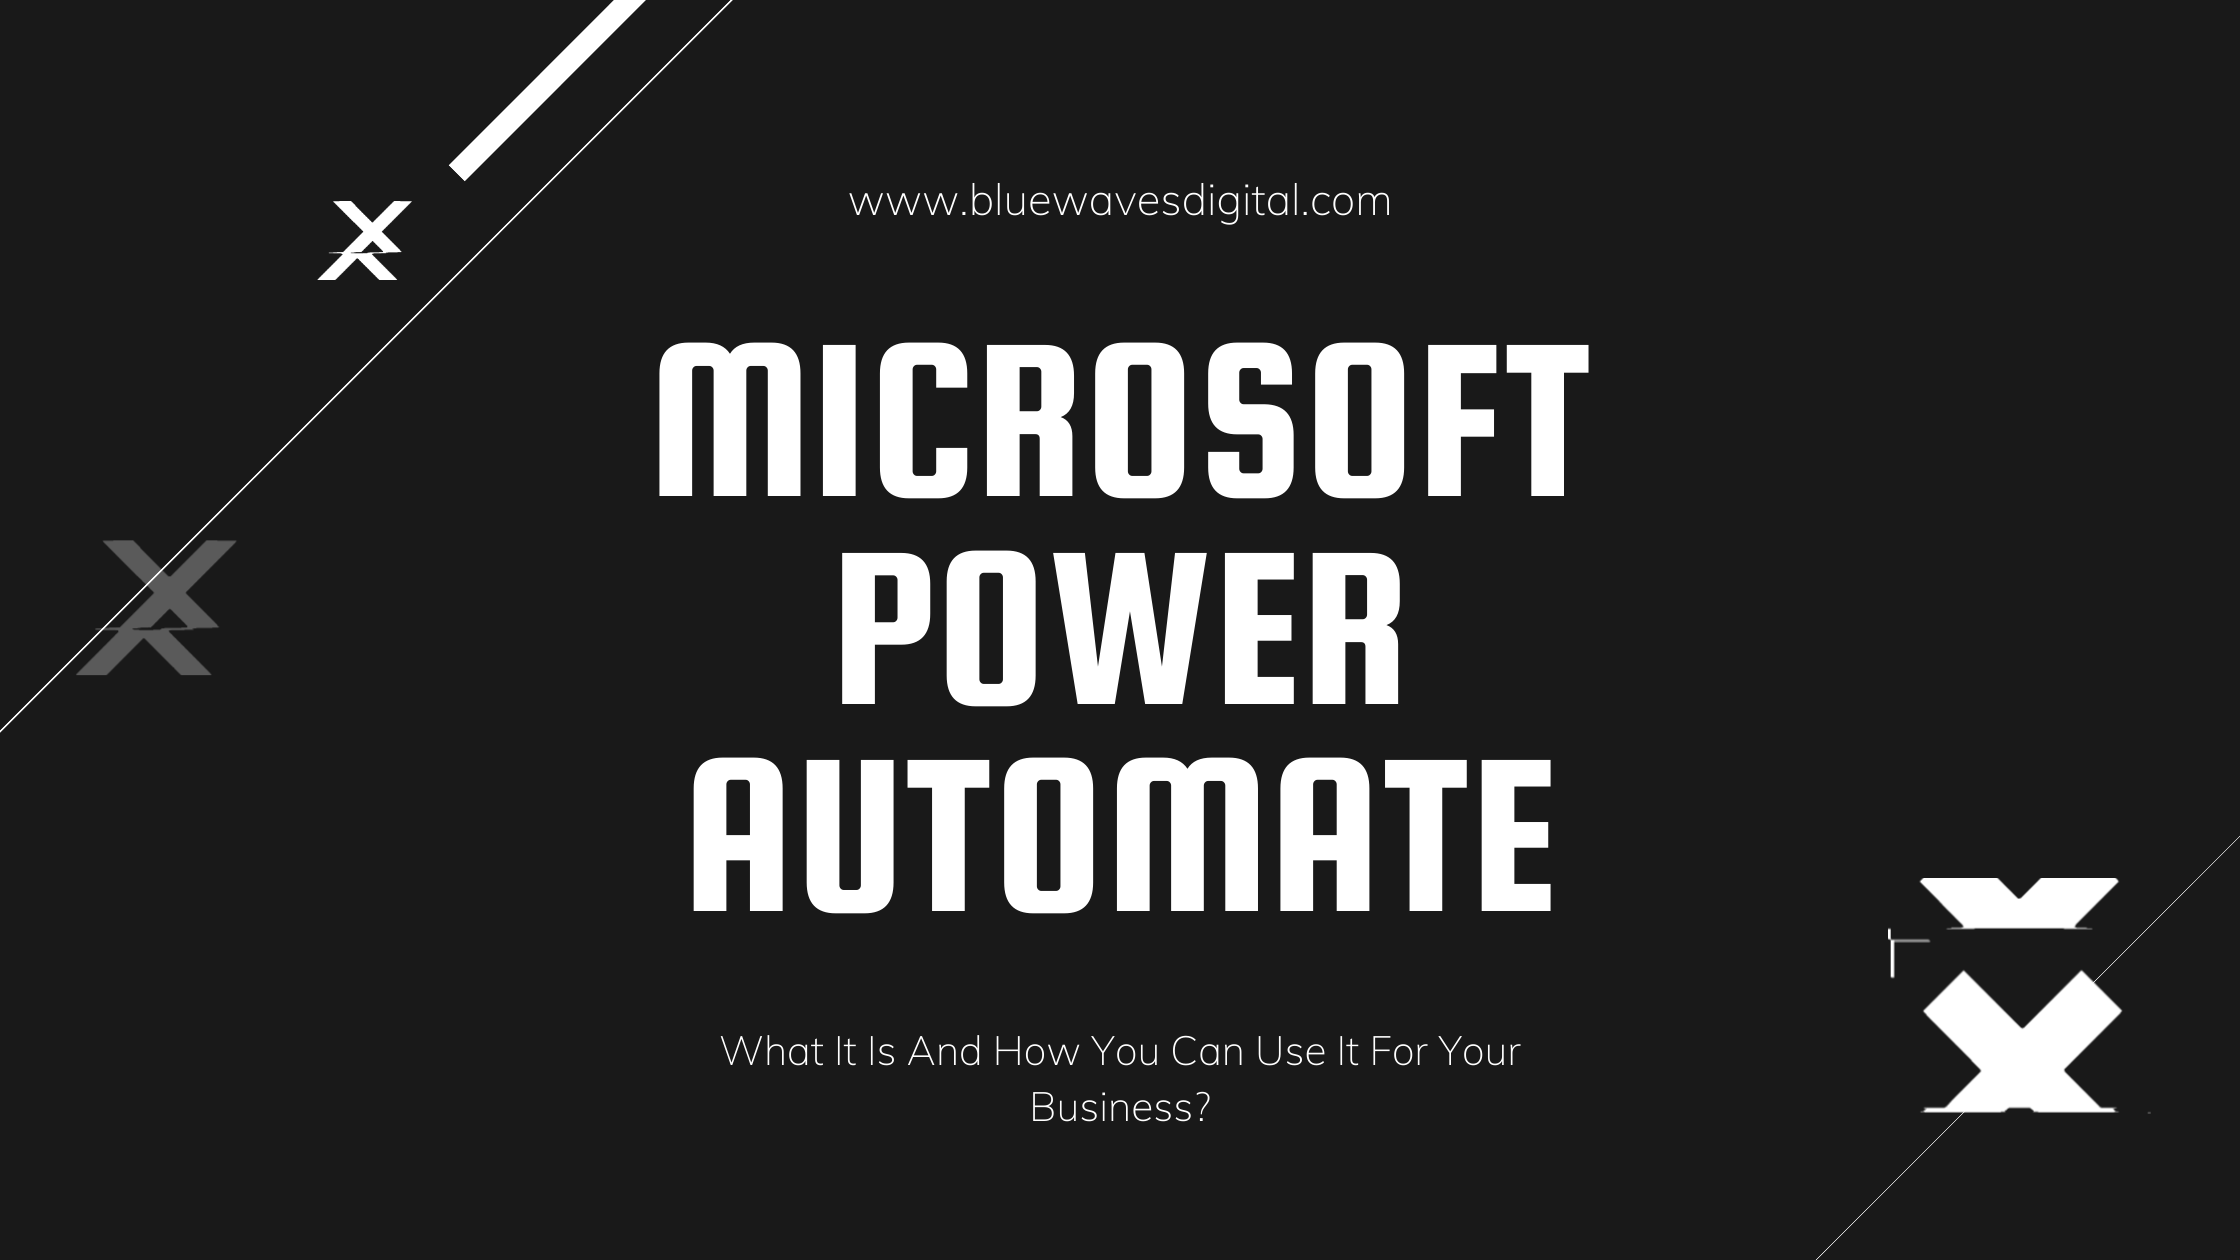 Microsoft Power Automate — How You Can Use It For Your Business?